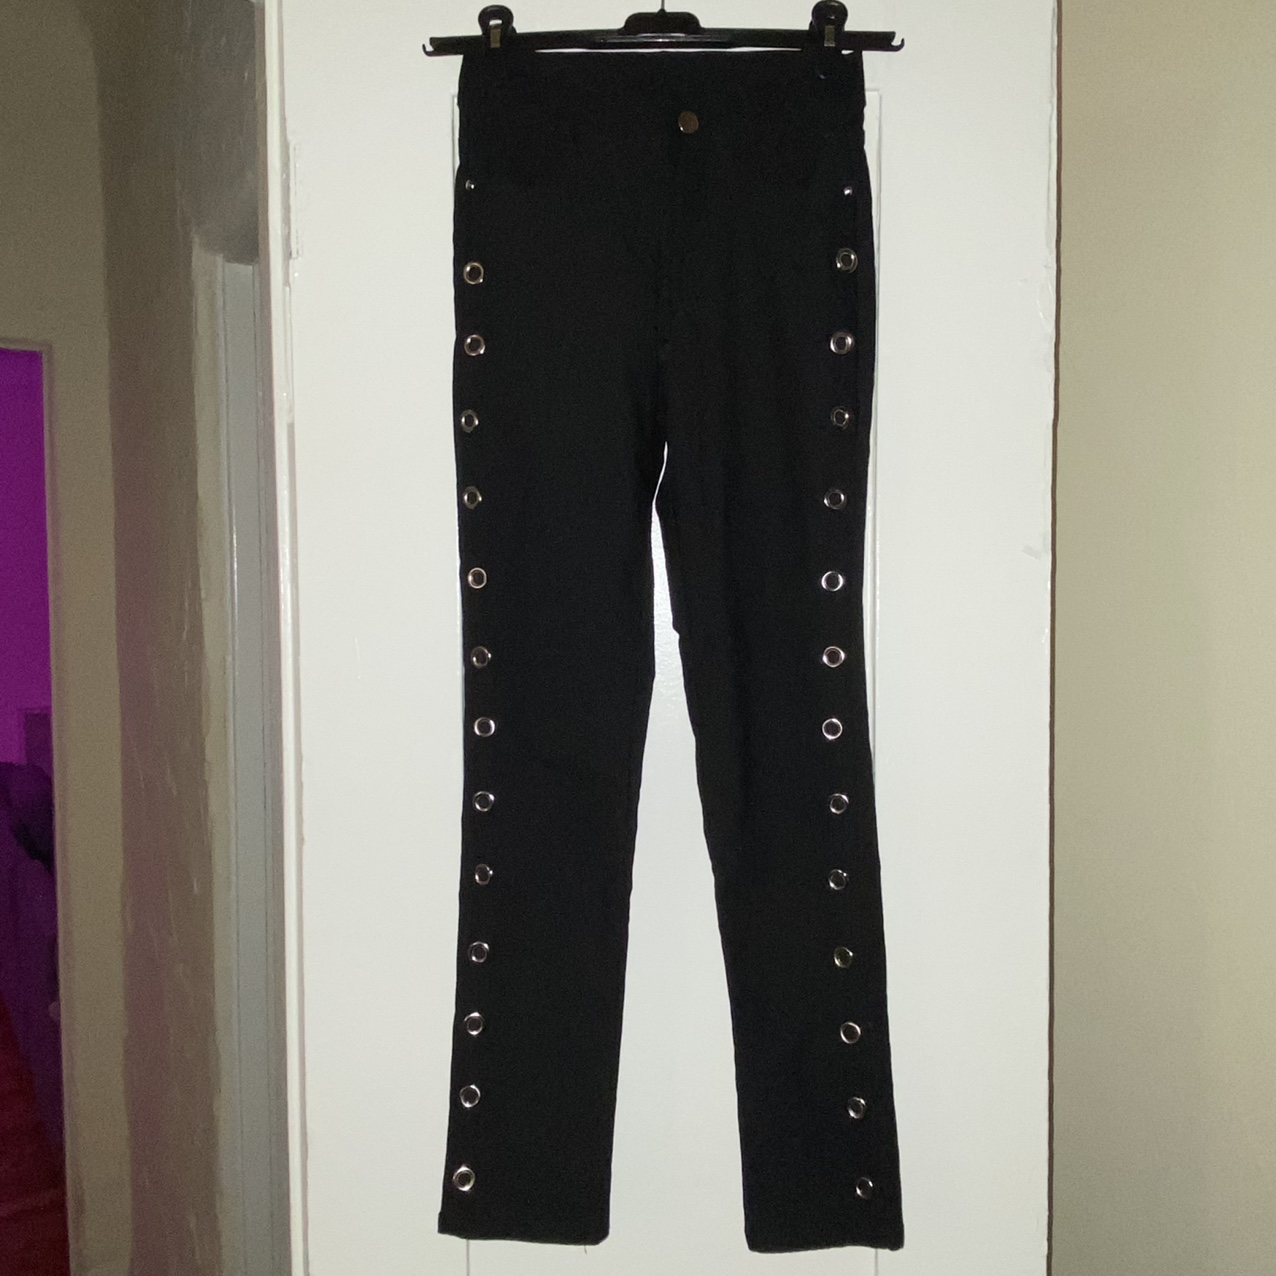 Product Image 1 - VINTAGE SKINNY PANT WITH GROMMETS -super